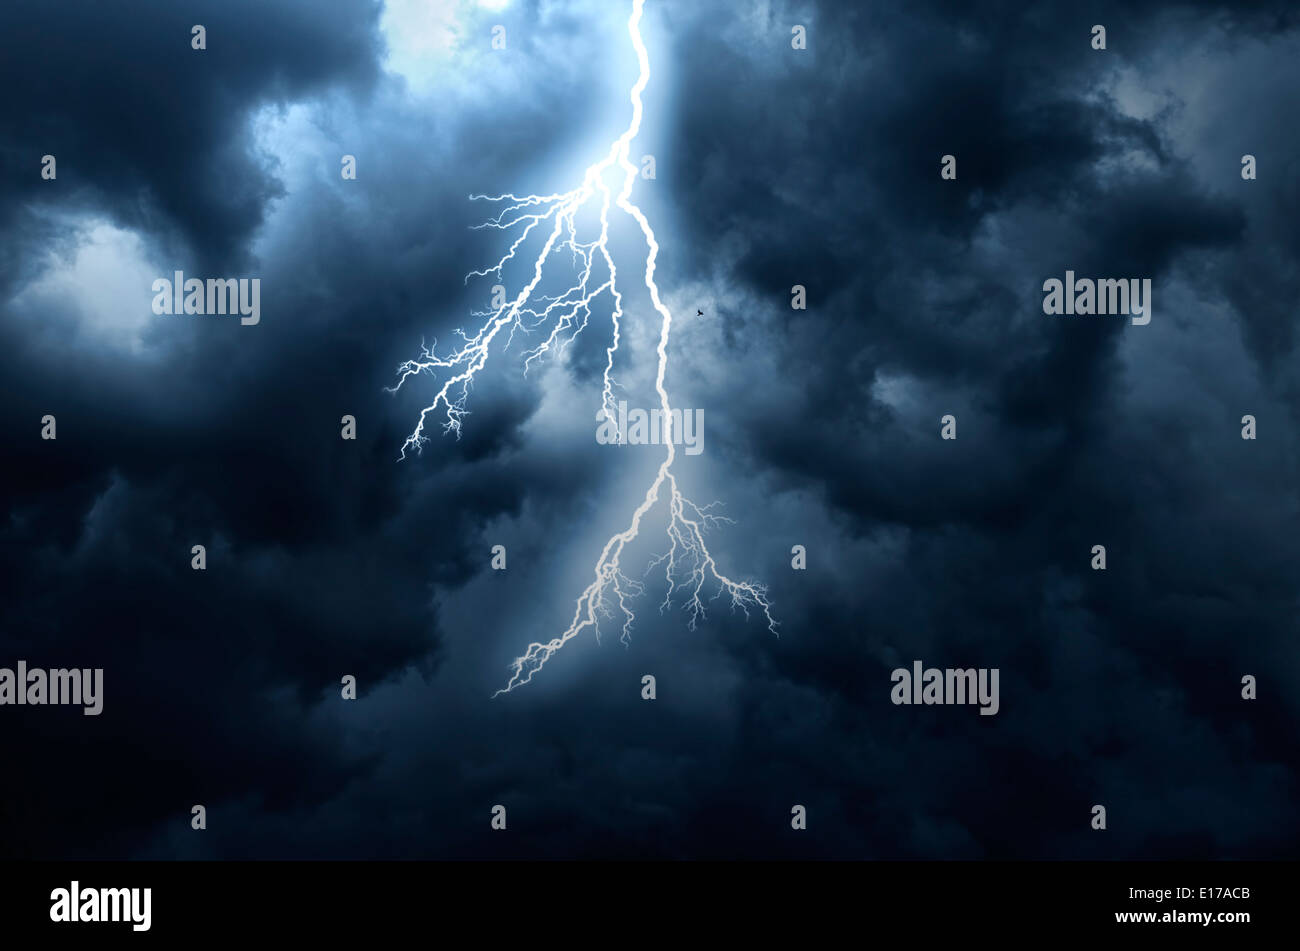 A lightning strike on the cloudy sky - Stock Image